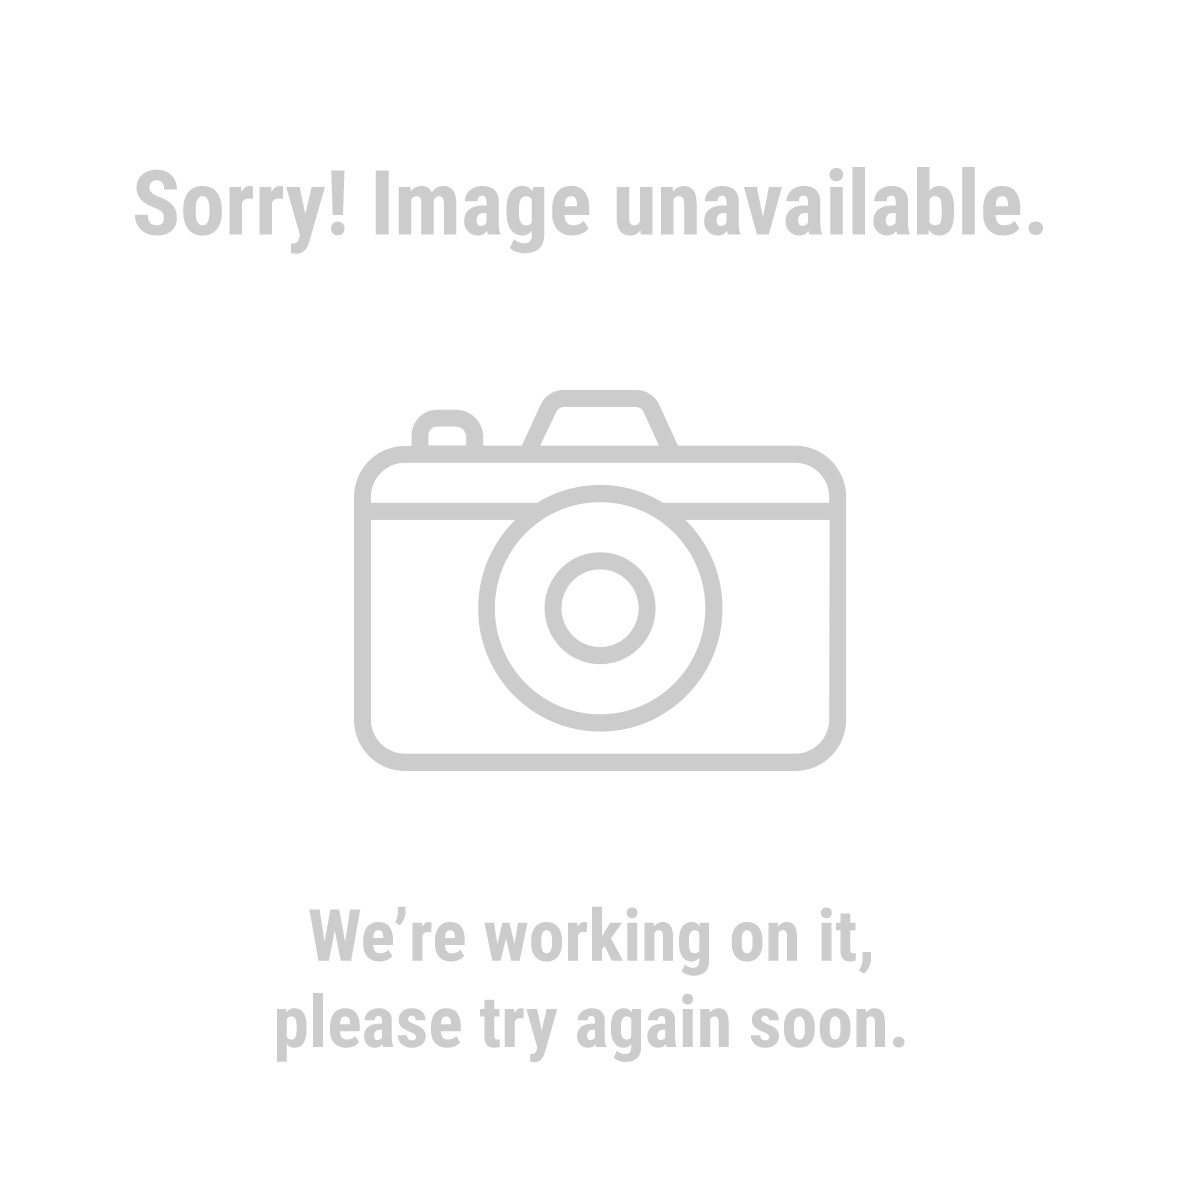 HARDY 62197 Split Leather Double Palm Work Gloves 5 Pr